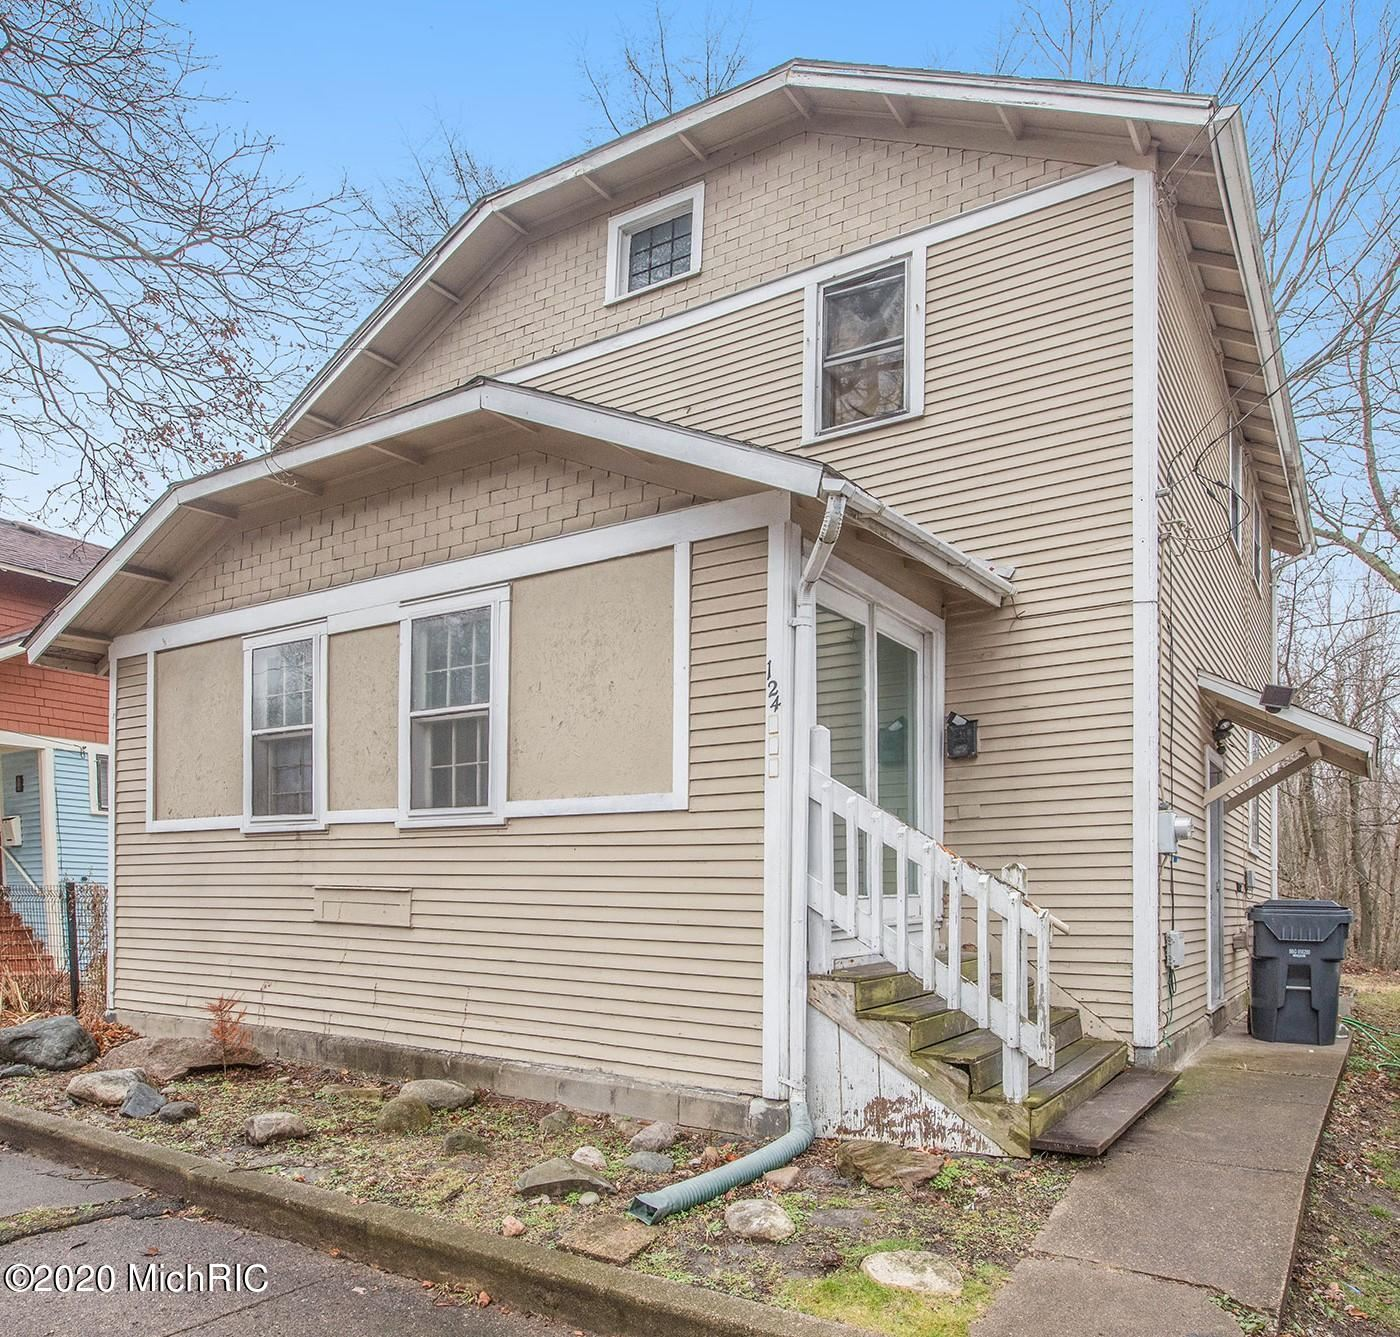 124 W Maple Street, Kalamazoo, MI 49001 - MLS#: 20051537